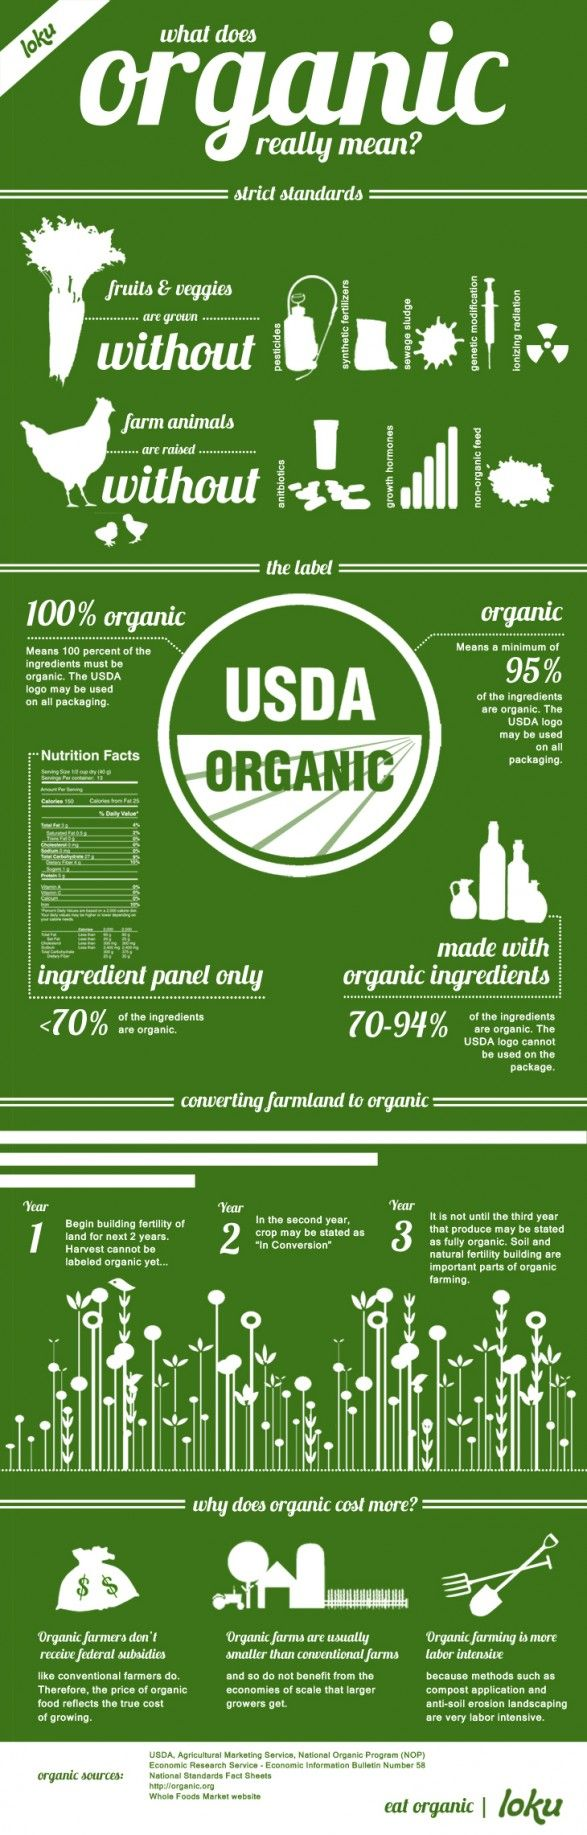 Great infographic on the meaning of 'Organic'... check it out!